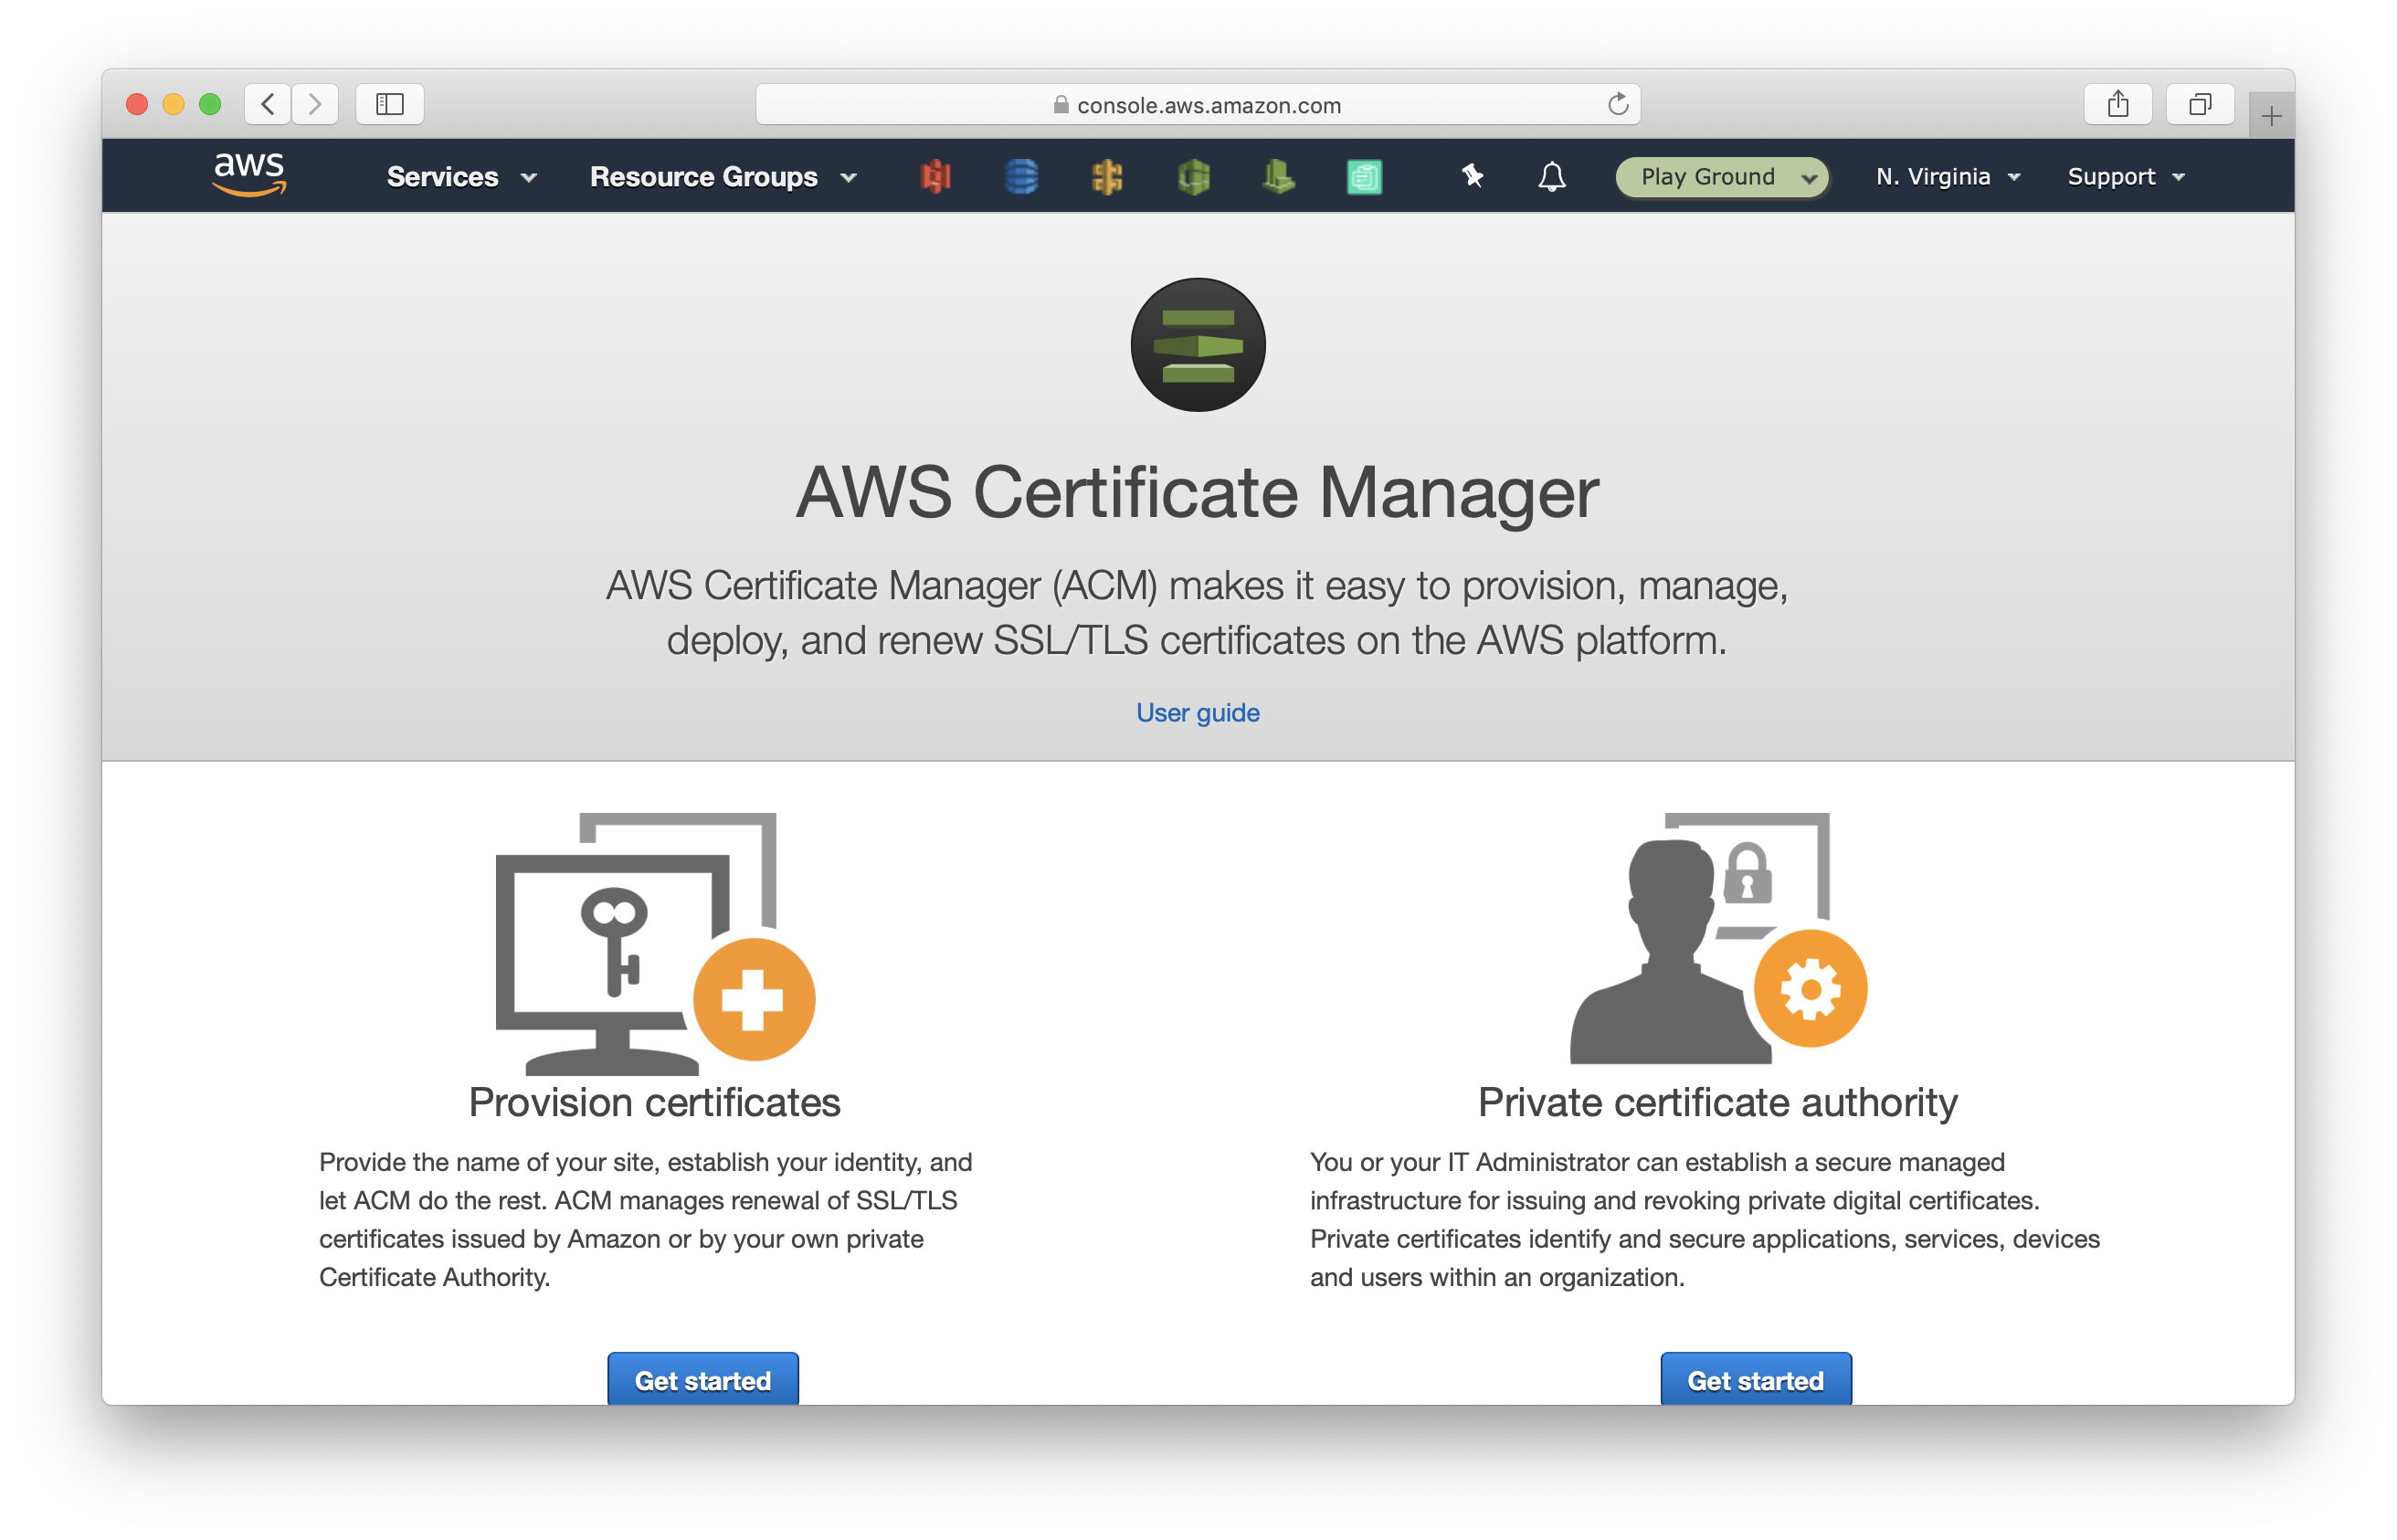 Click Provision certificates in Certificate Manager